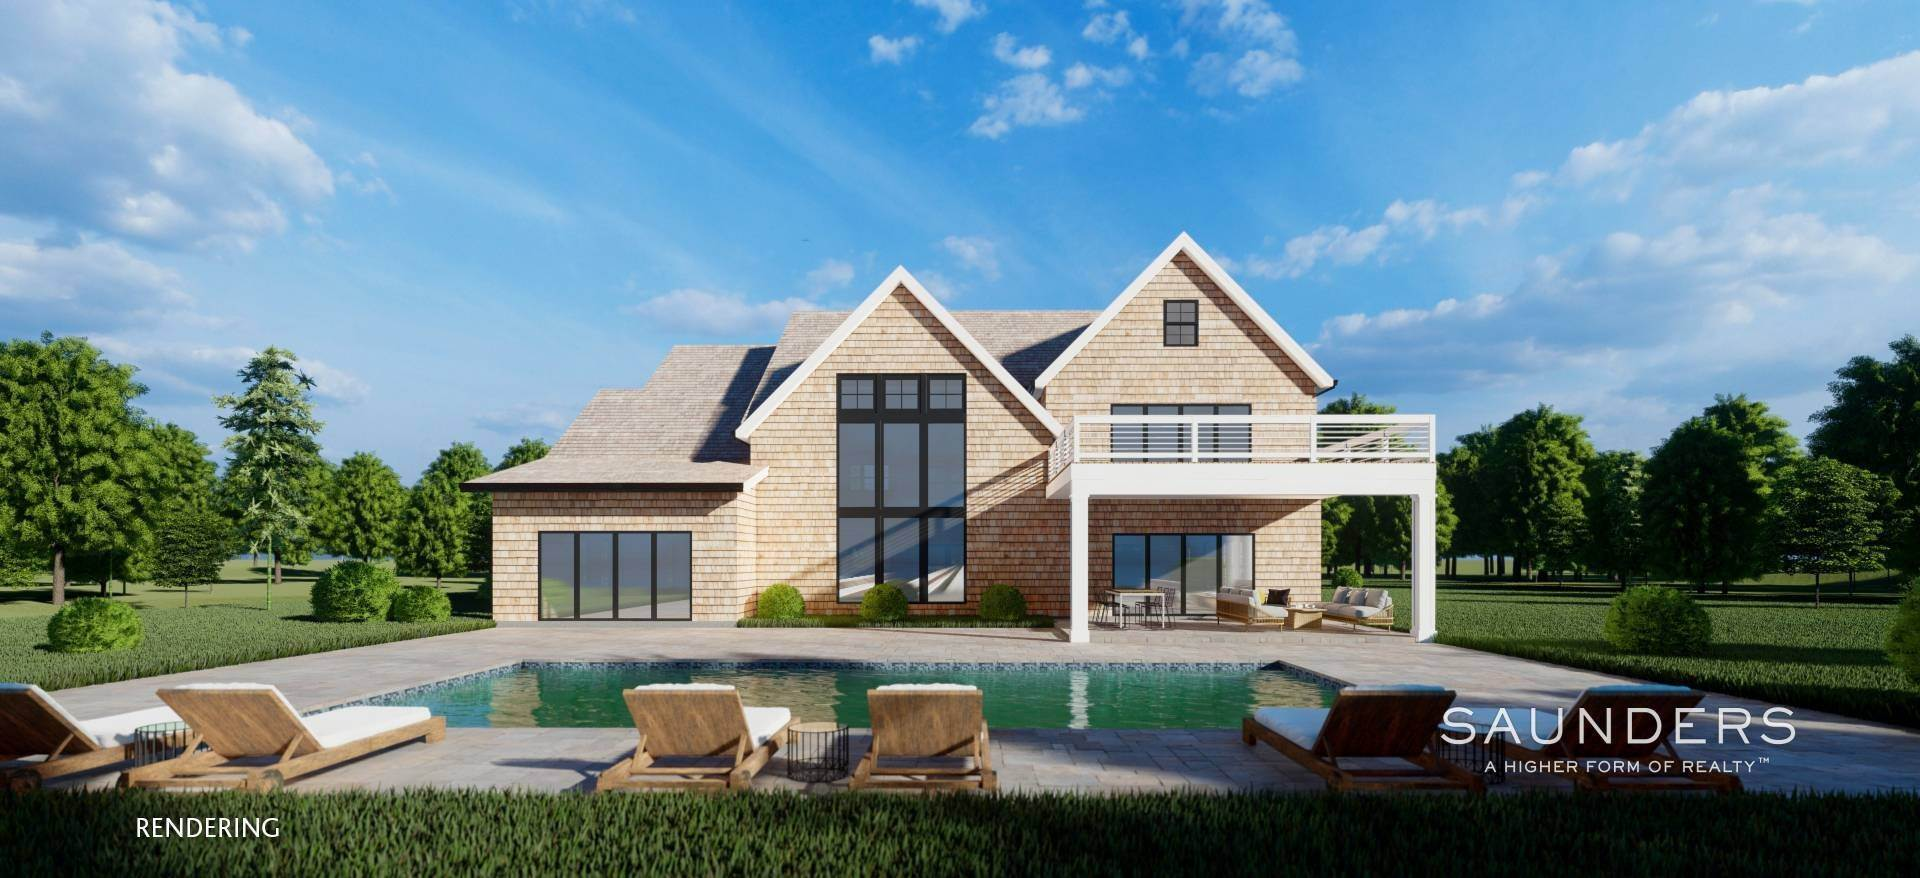 9. Single Family Homes for Sale at Sagaponack New Construction With Pool And Tennis 21 Forest Crossing, Sagaponack, Southampton Town, NY 11962